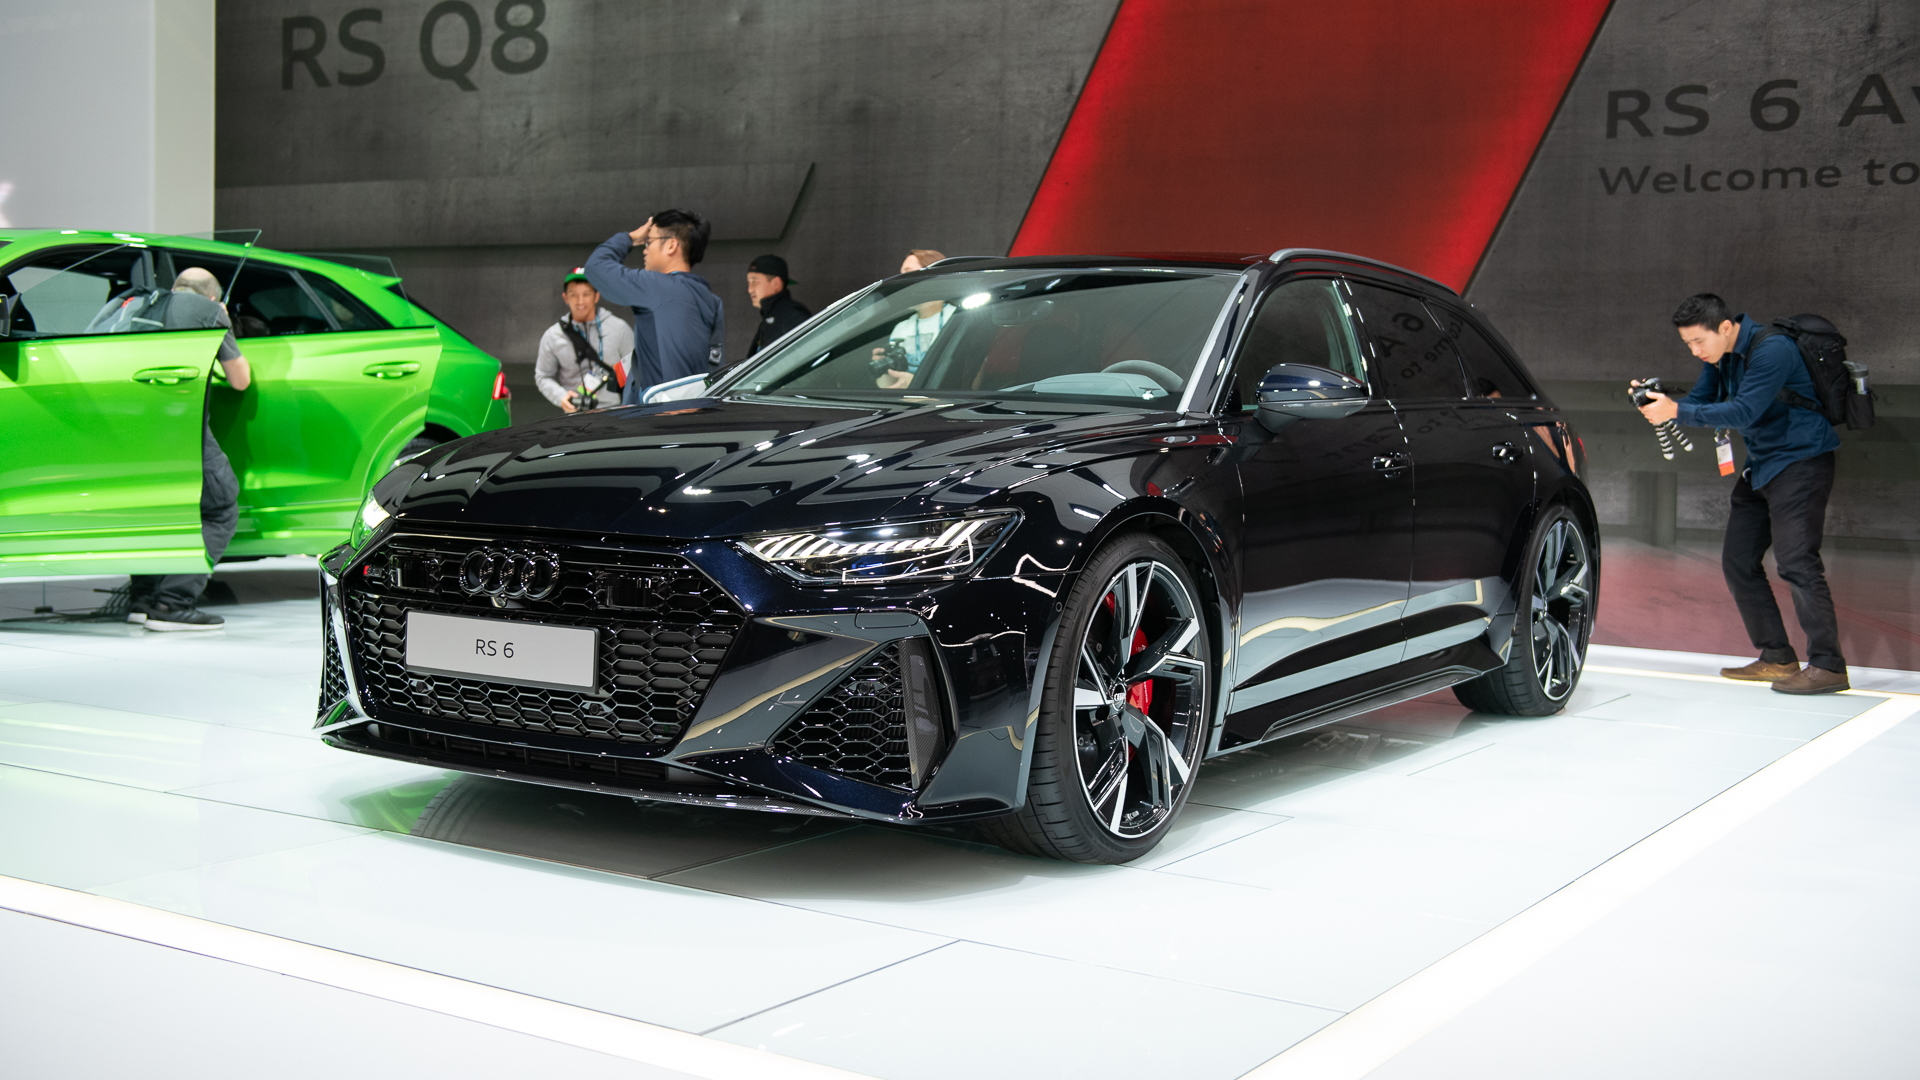 2020 Audi Rs 6 Avant Is An Angry 109 995 Wagon Ready For Soccer Practice